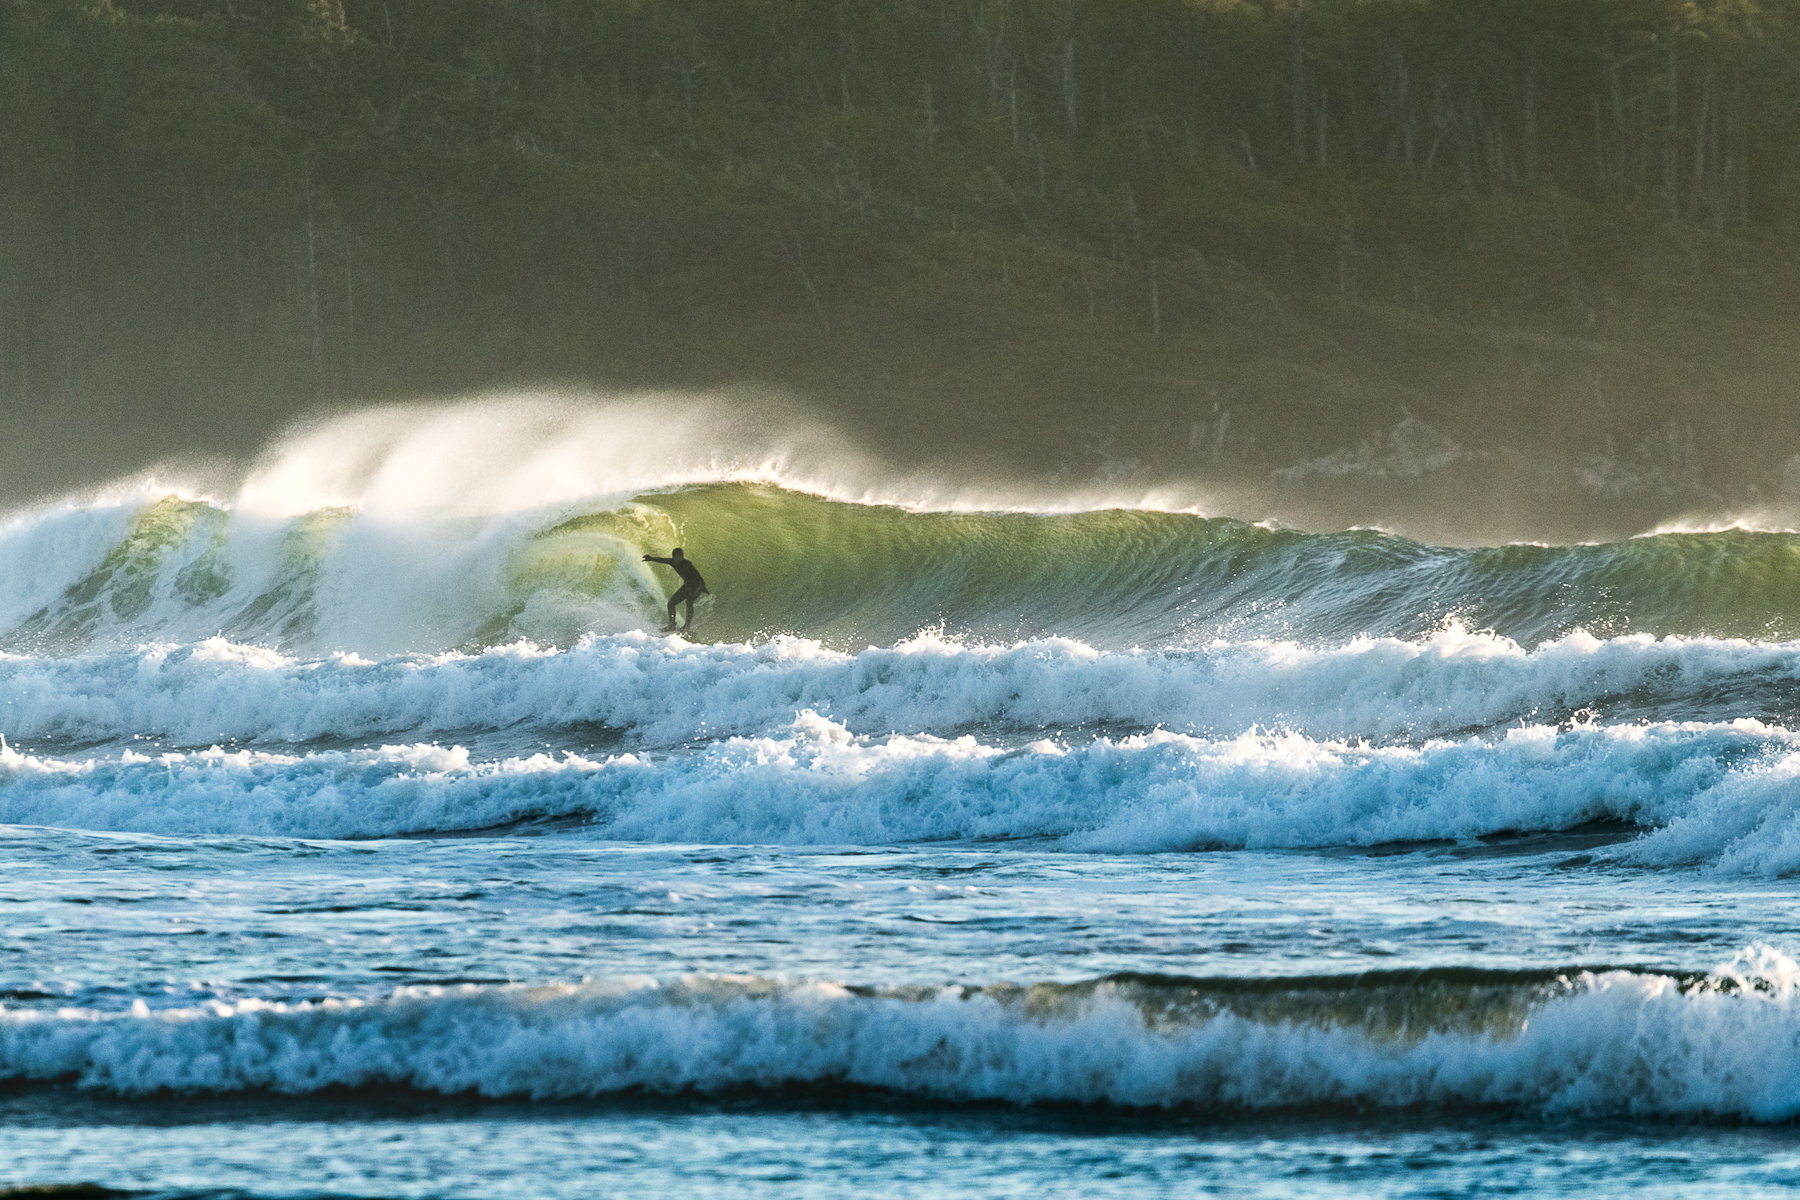 Tofino Surf Photography - Unexpected Size